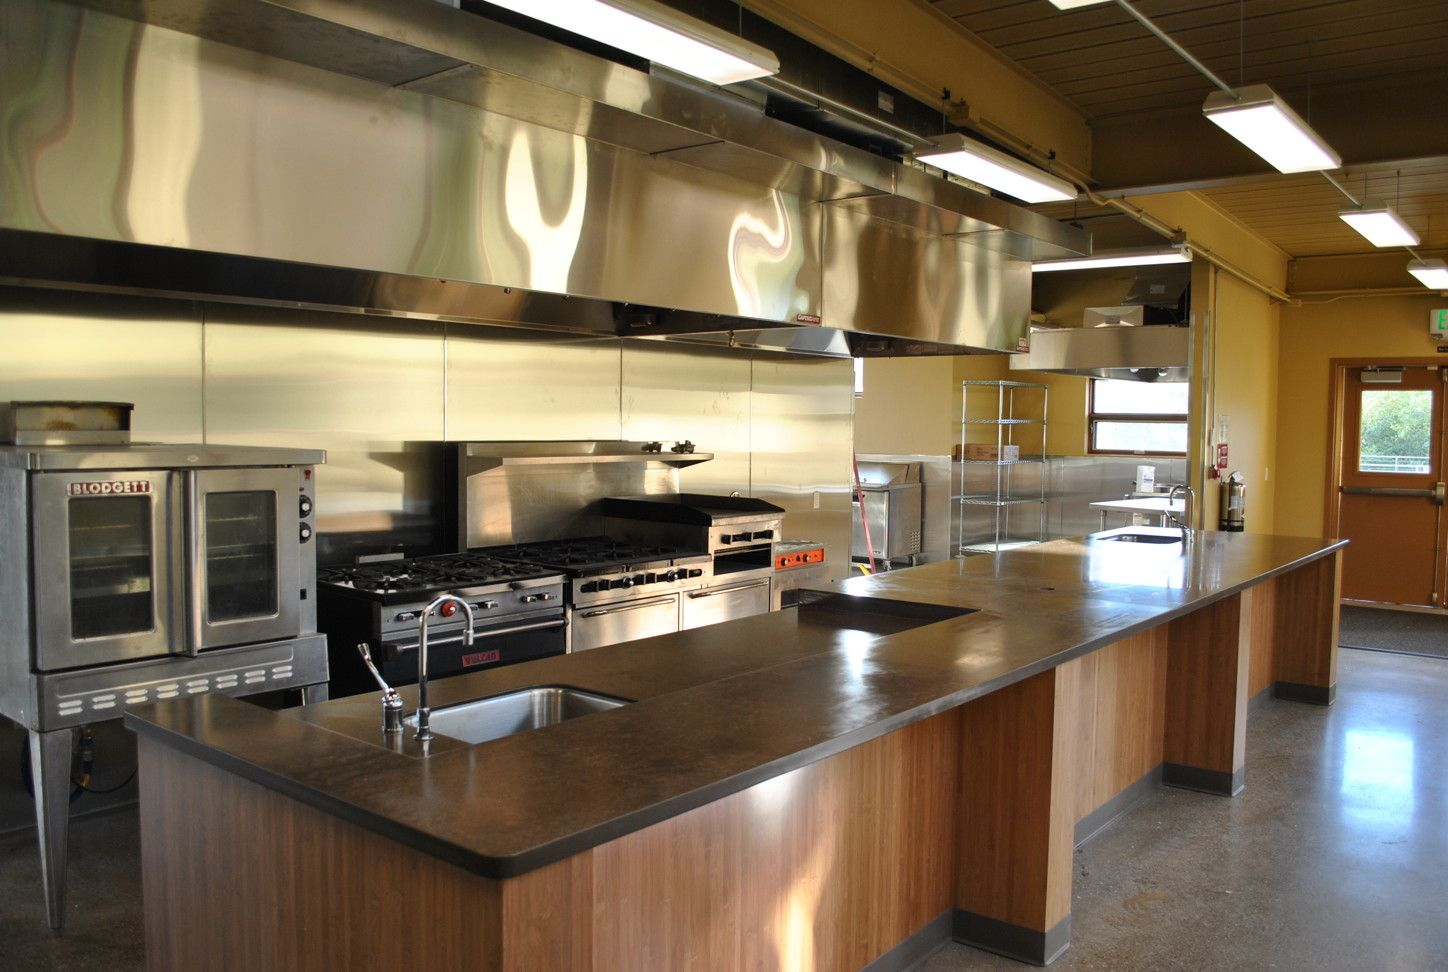 charming Commercial Kitchen For Rent Dallas #9: 1000+ images about Commercial kitchen on Pinterest | Restaurant, Bakeries and Commercial